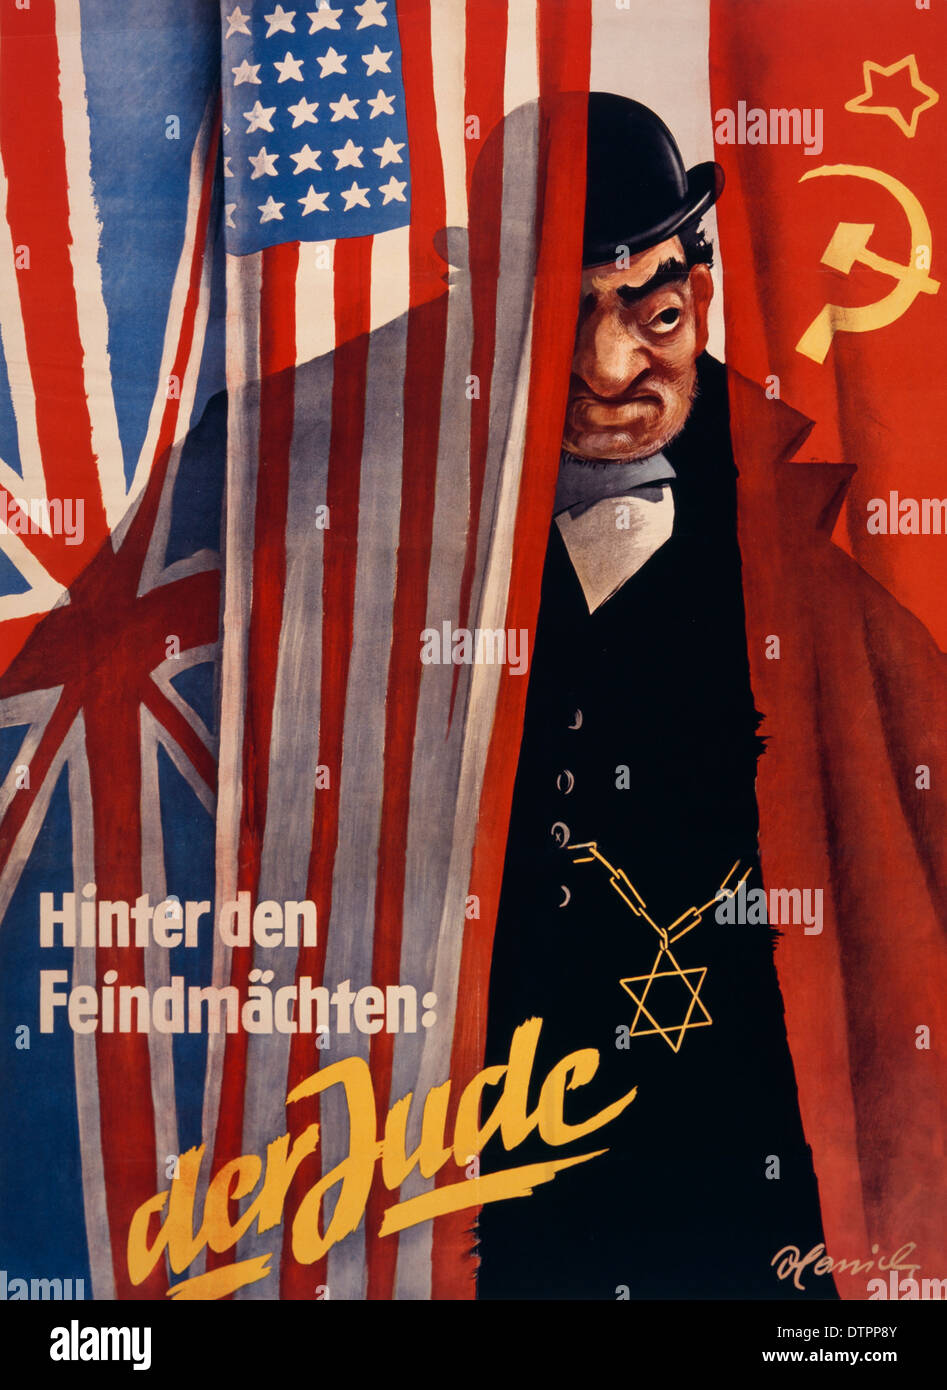 an analysis of the propaganda and ideology in nazi germany The mythical world of nazi war propaganda 1939-45 chapter one: the mythical world of nazi propaganda by uniting patriotism and nazi ideology.